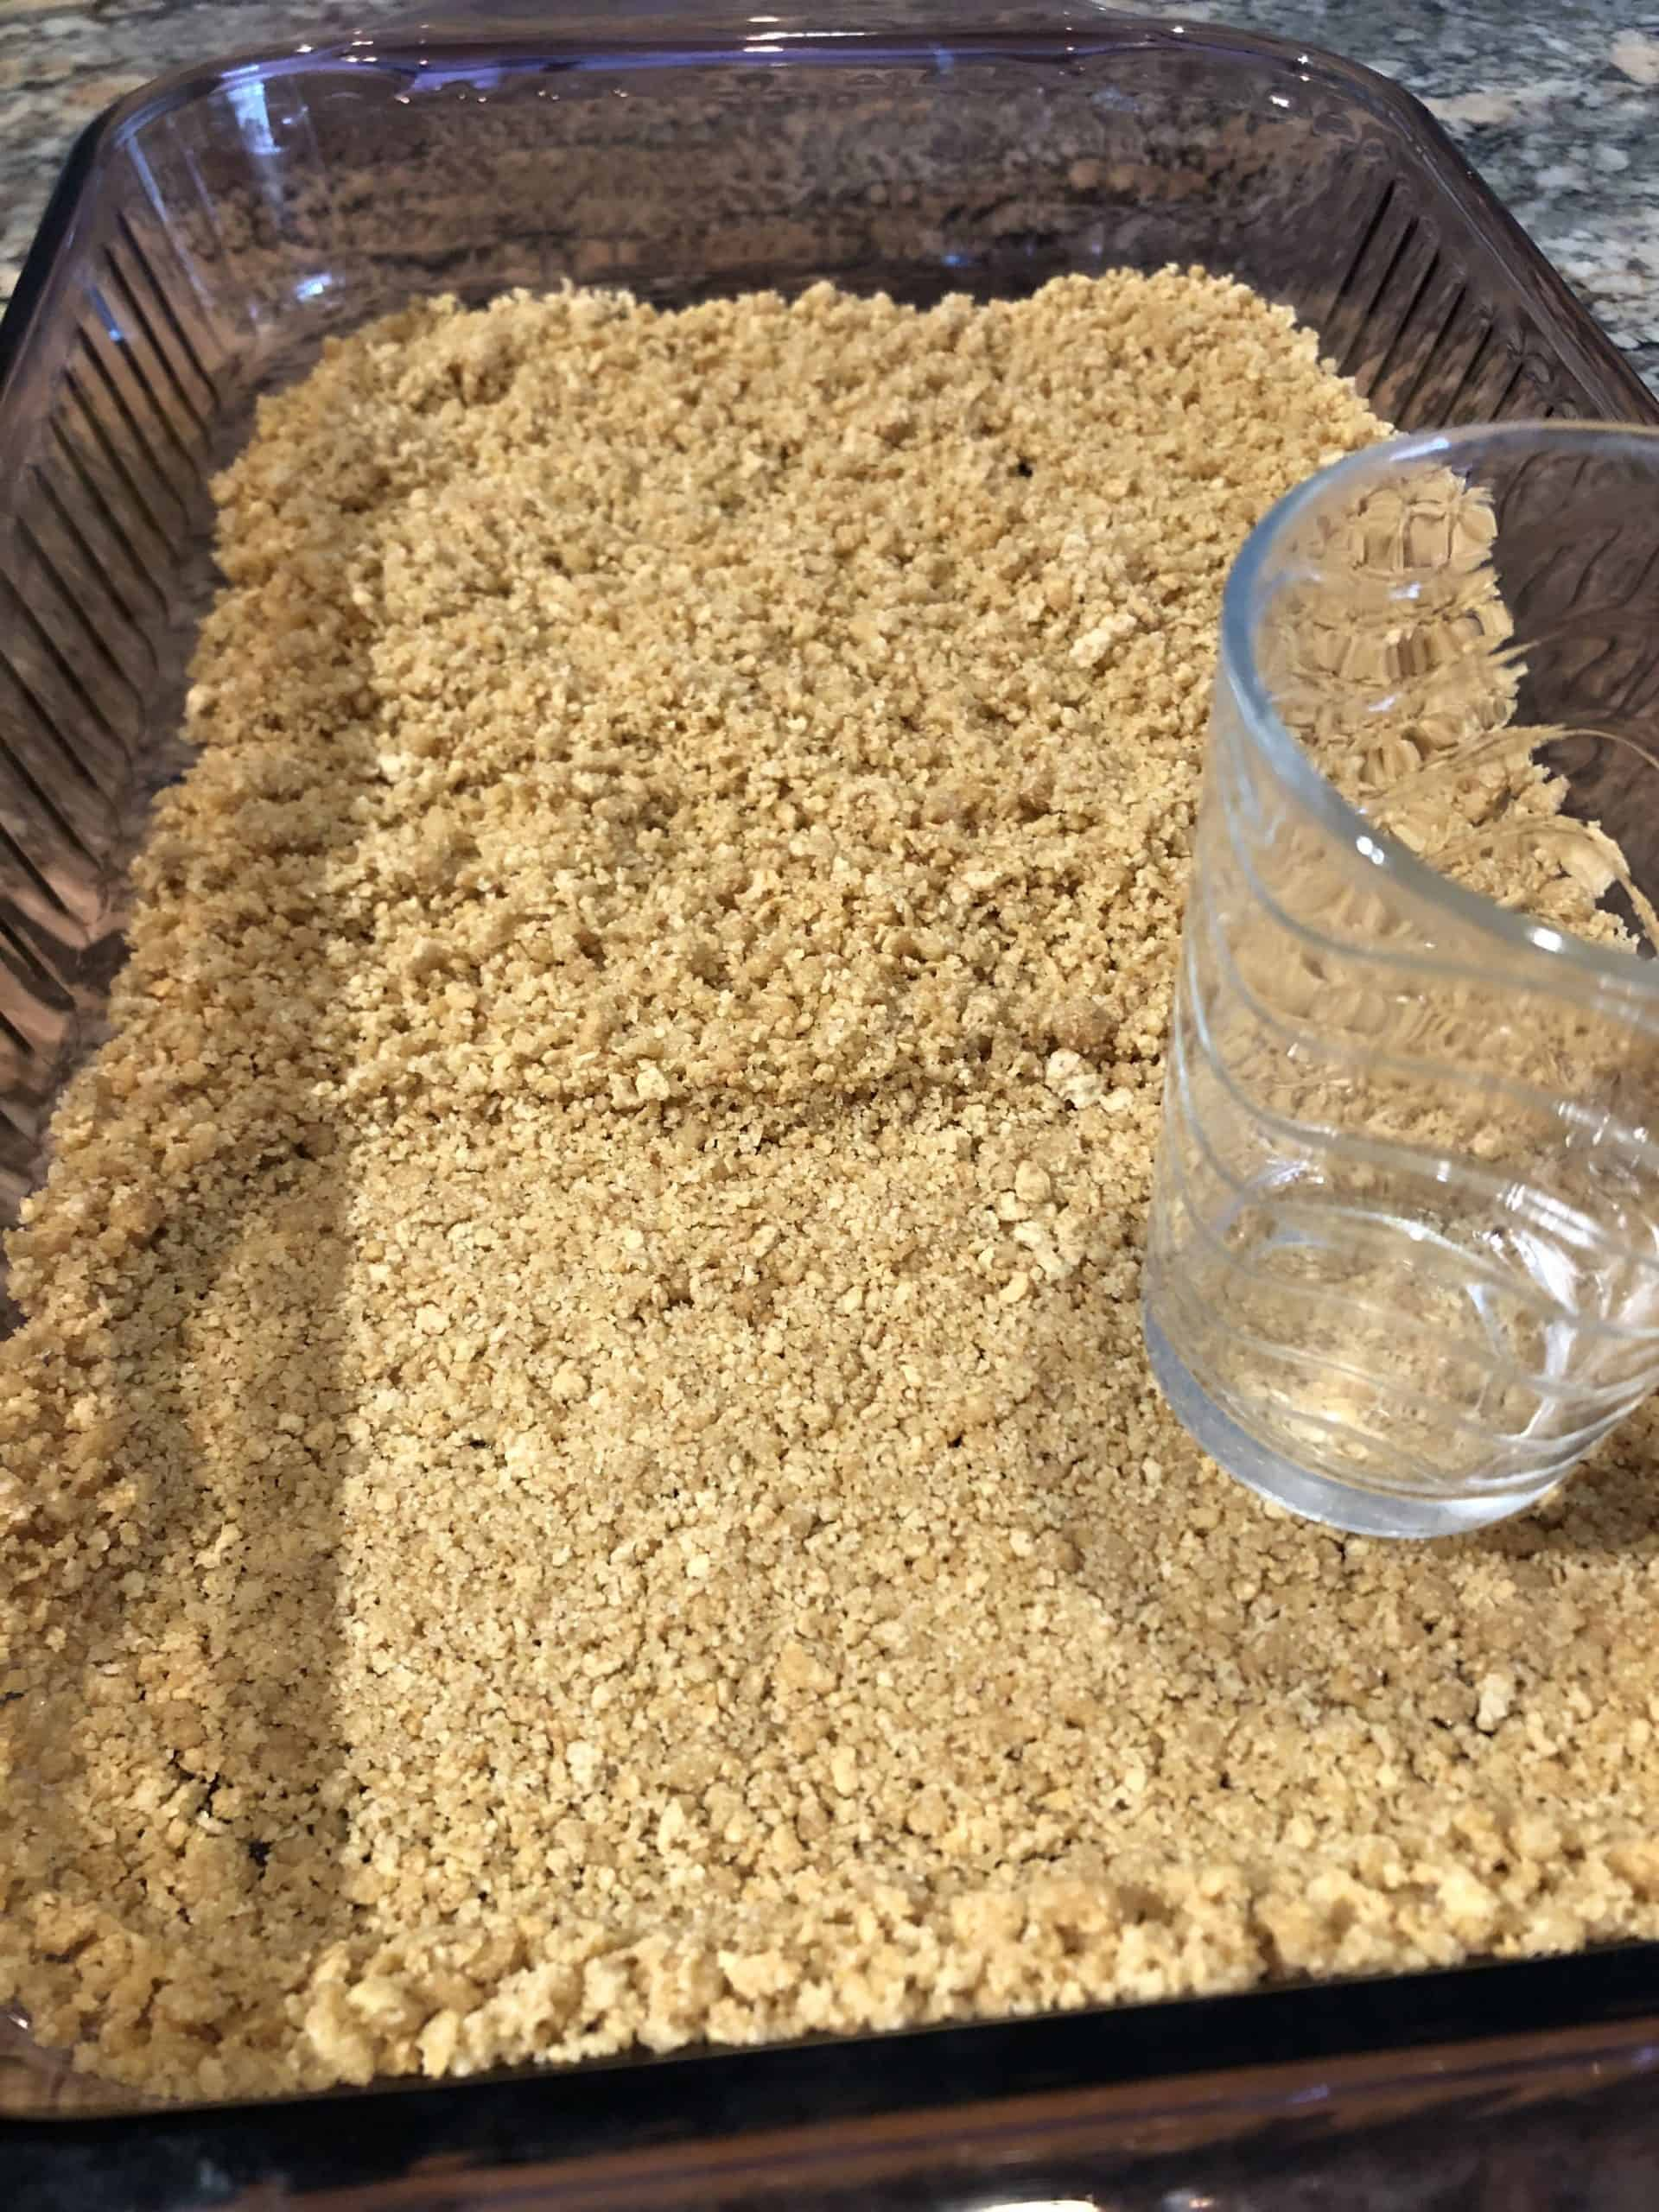 Packing Graham Cracker Crust into Baking Dish